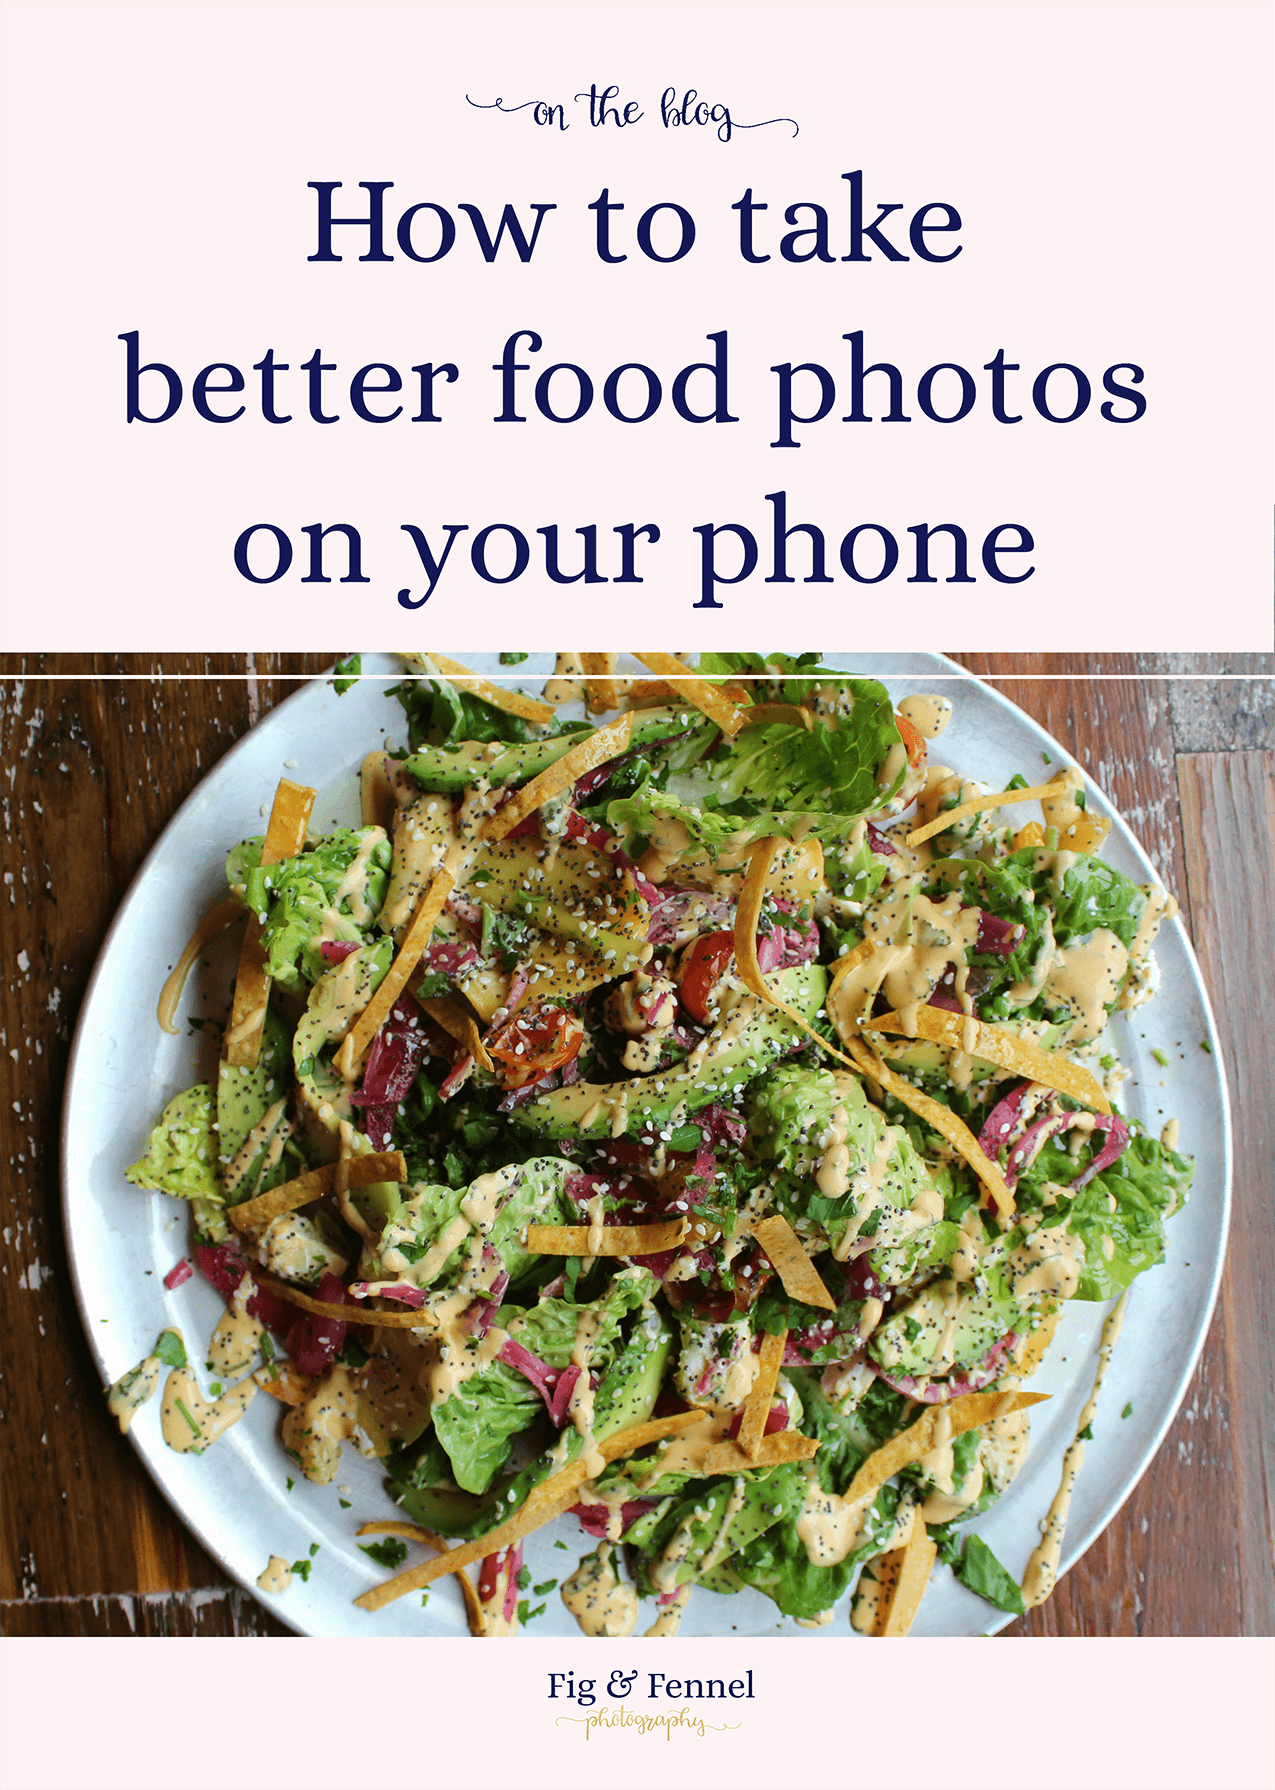 How to take better food photos on your phone